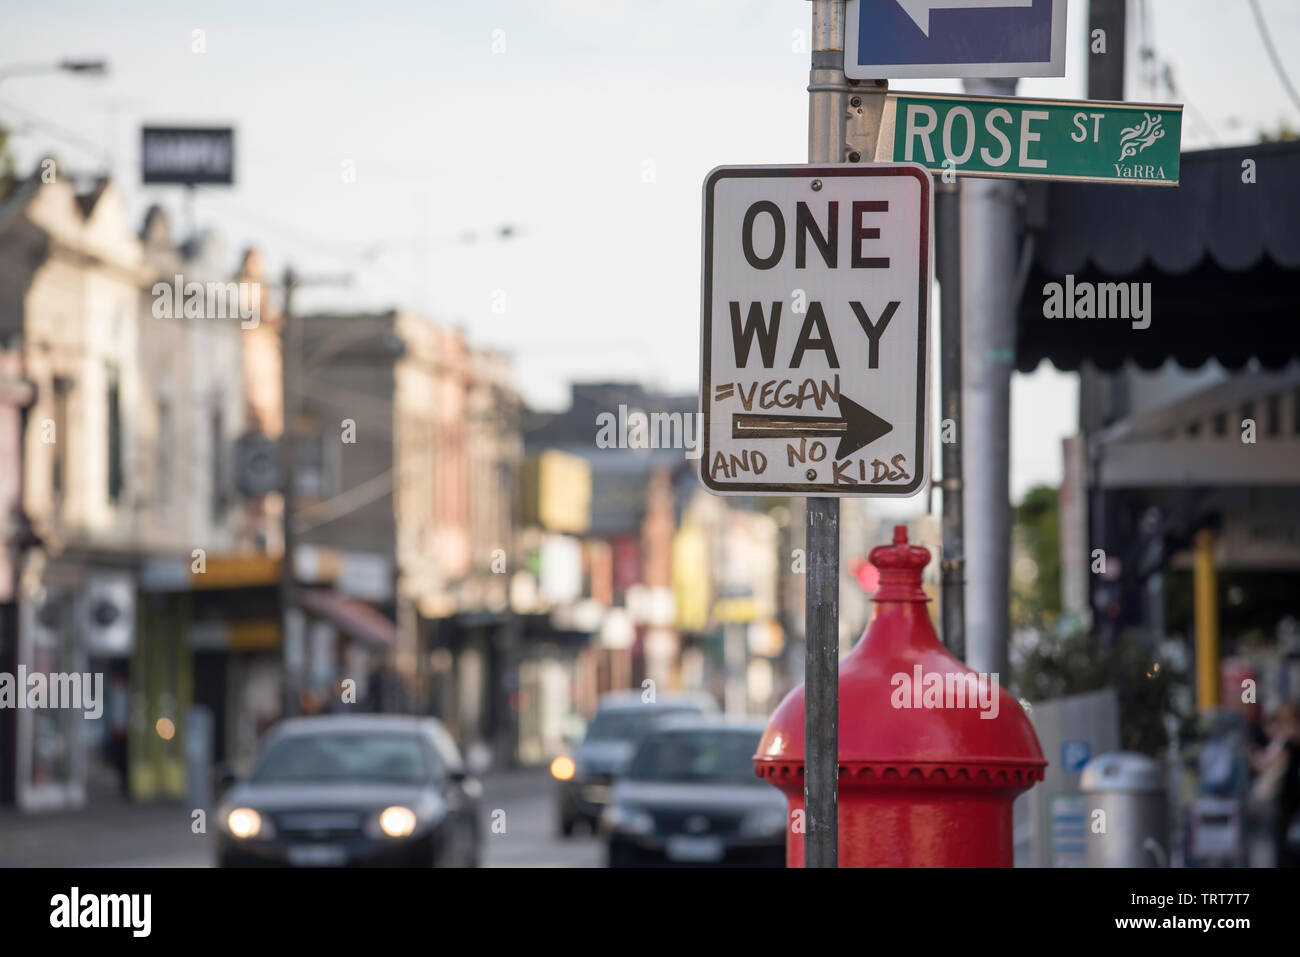 A One Way traffic sign with added words Vegan and no kids on Brunswick Street, Fitzroy in Melbourne, Victoria, Australia - Stock Image